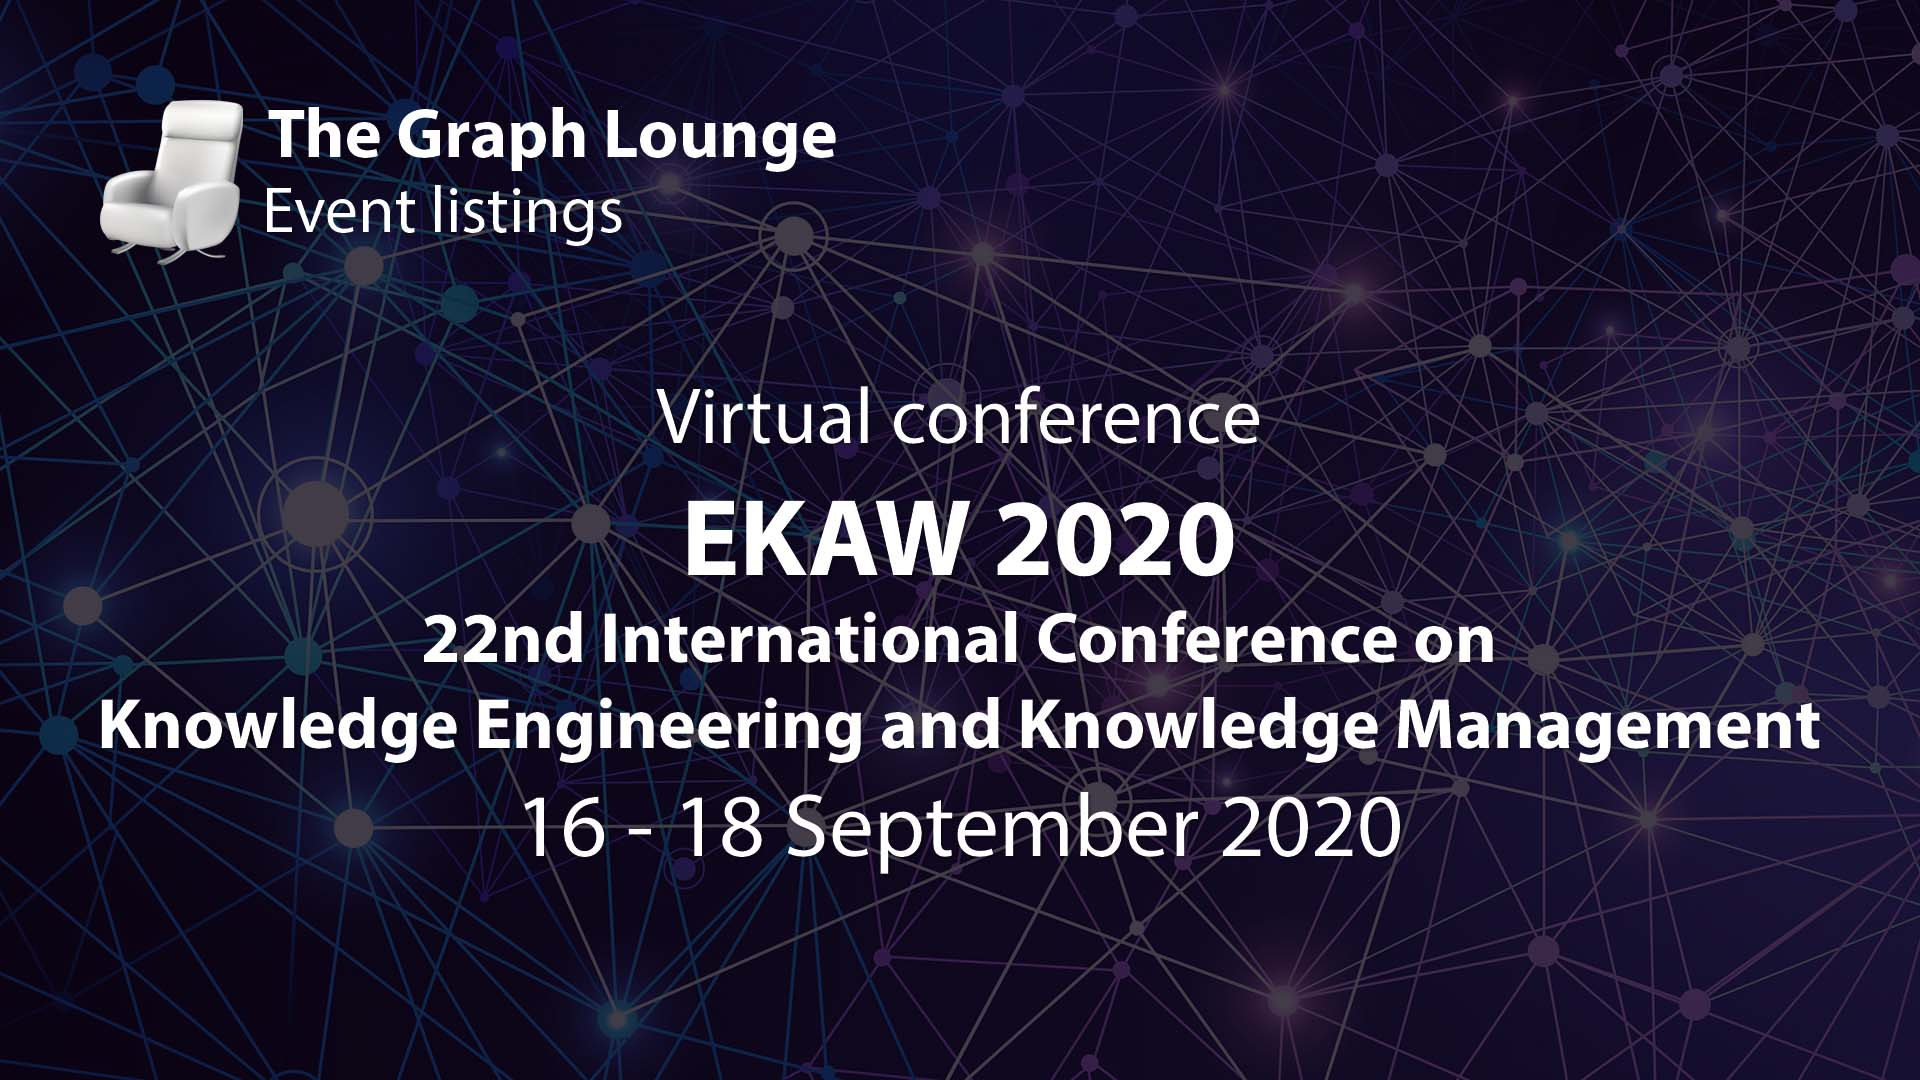 EKAW 2020 (22nd International Conference on Knowledge Engineering and Knowledge Management)